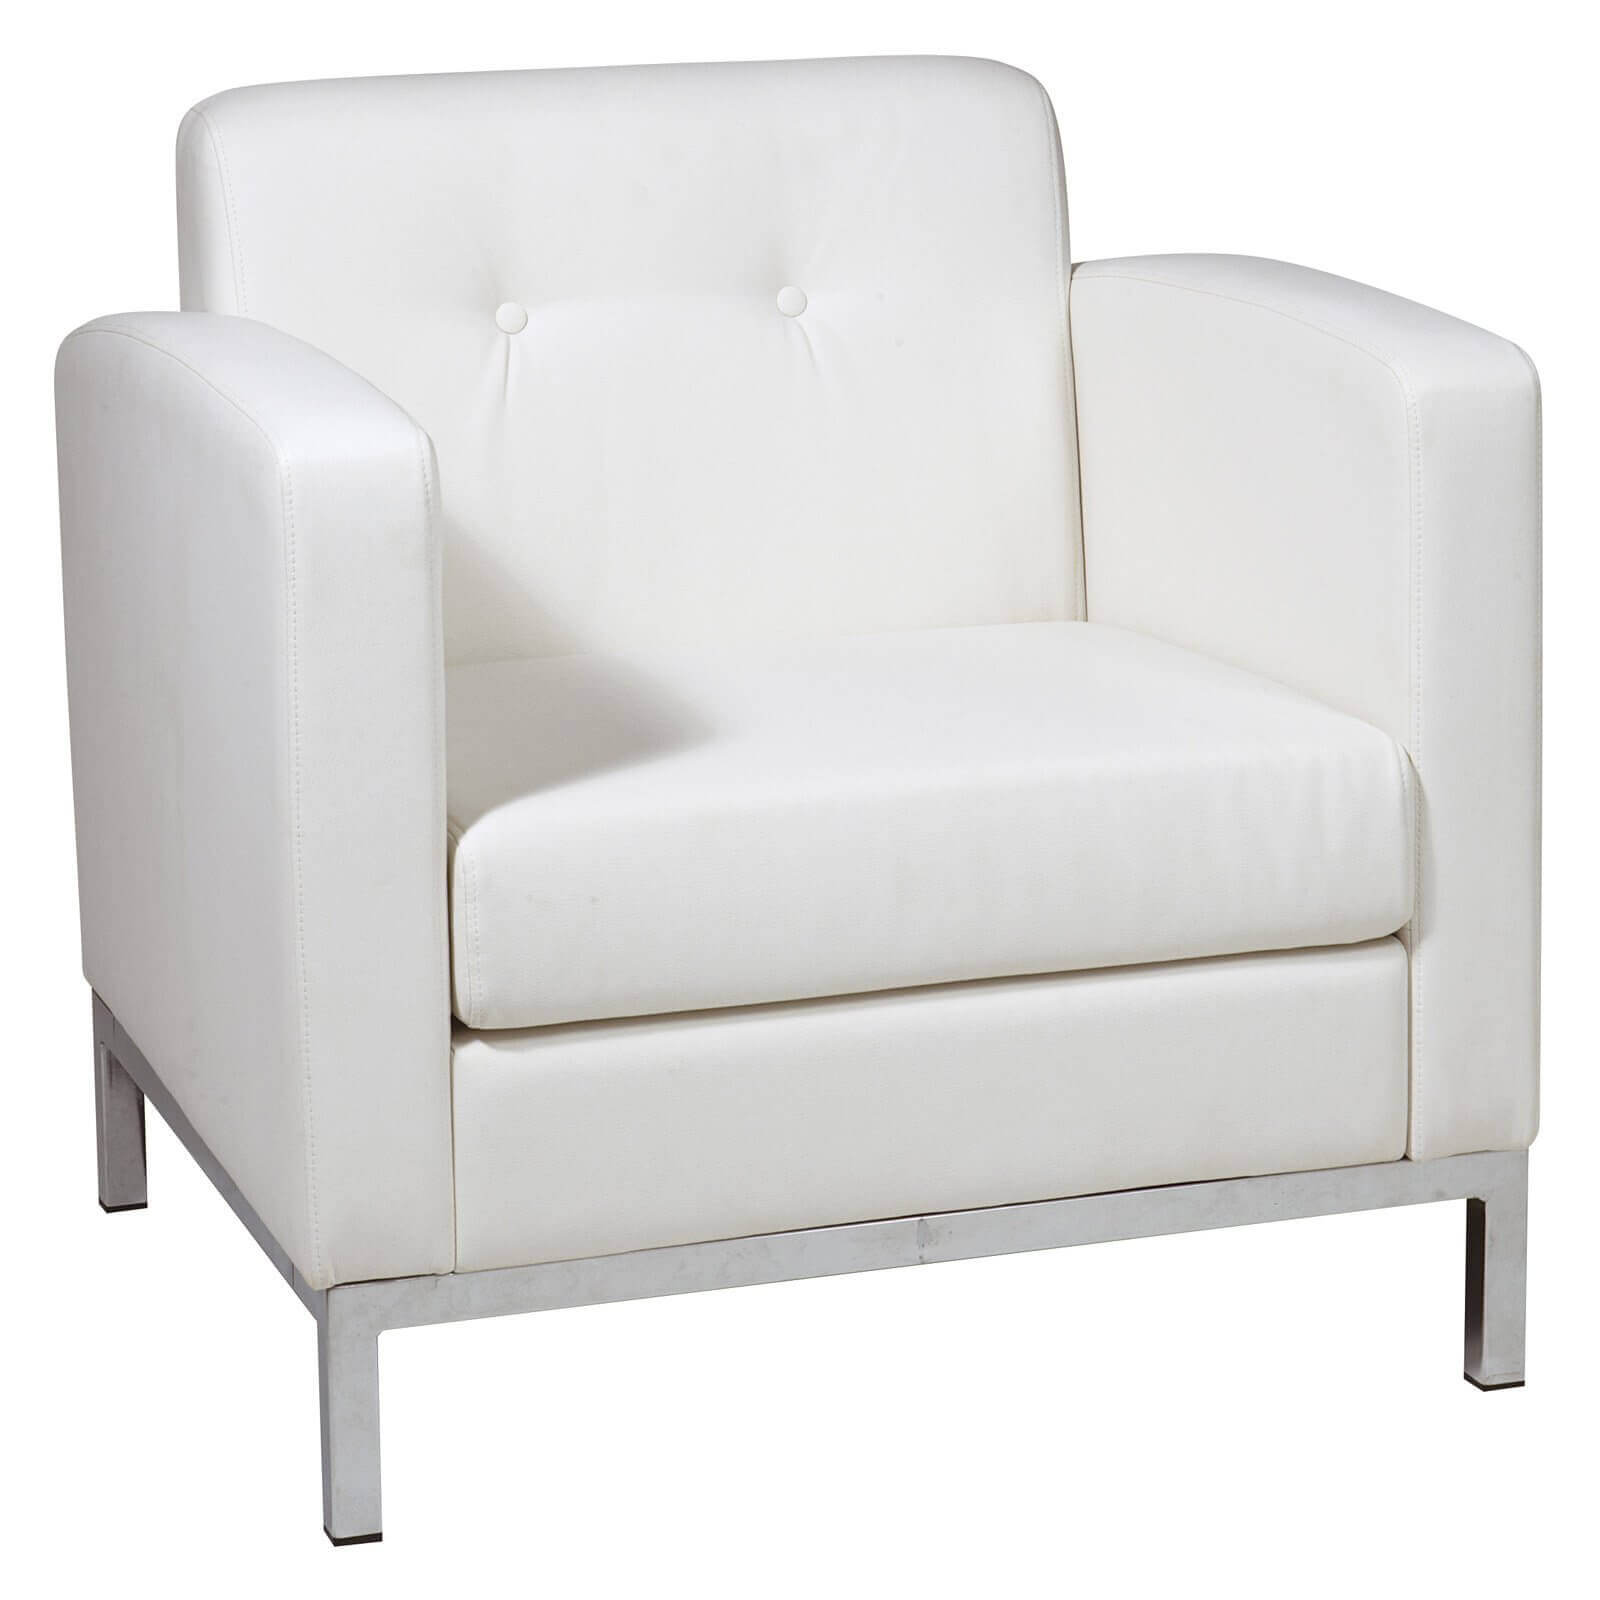 Streamlined boxy white faux leather design of this accent chair from office star provides contemporary